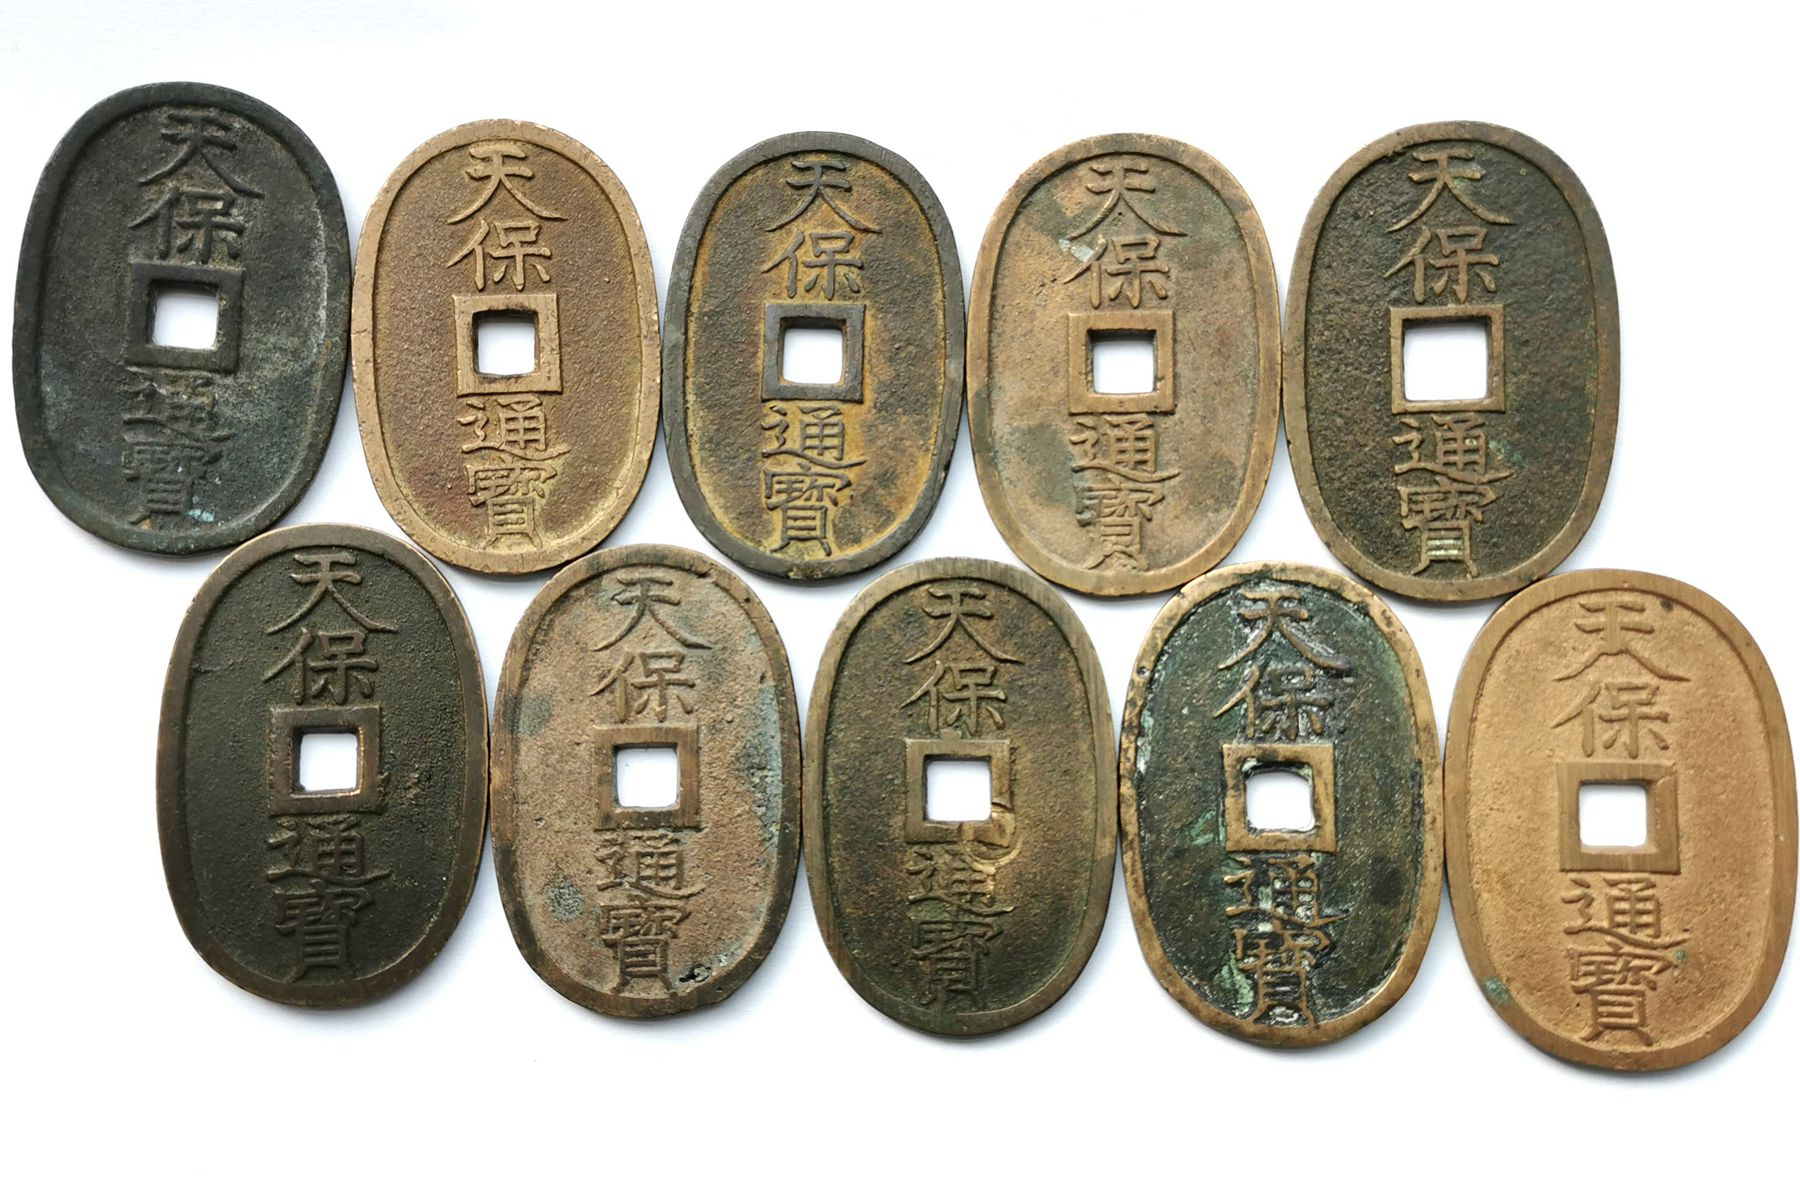 L7048, Japan 100 Mon value Tenpou Tsu-ho Coin, 10 Pcs (1835-1870)